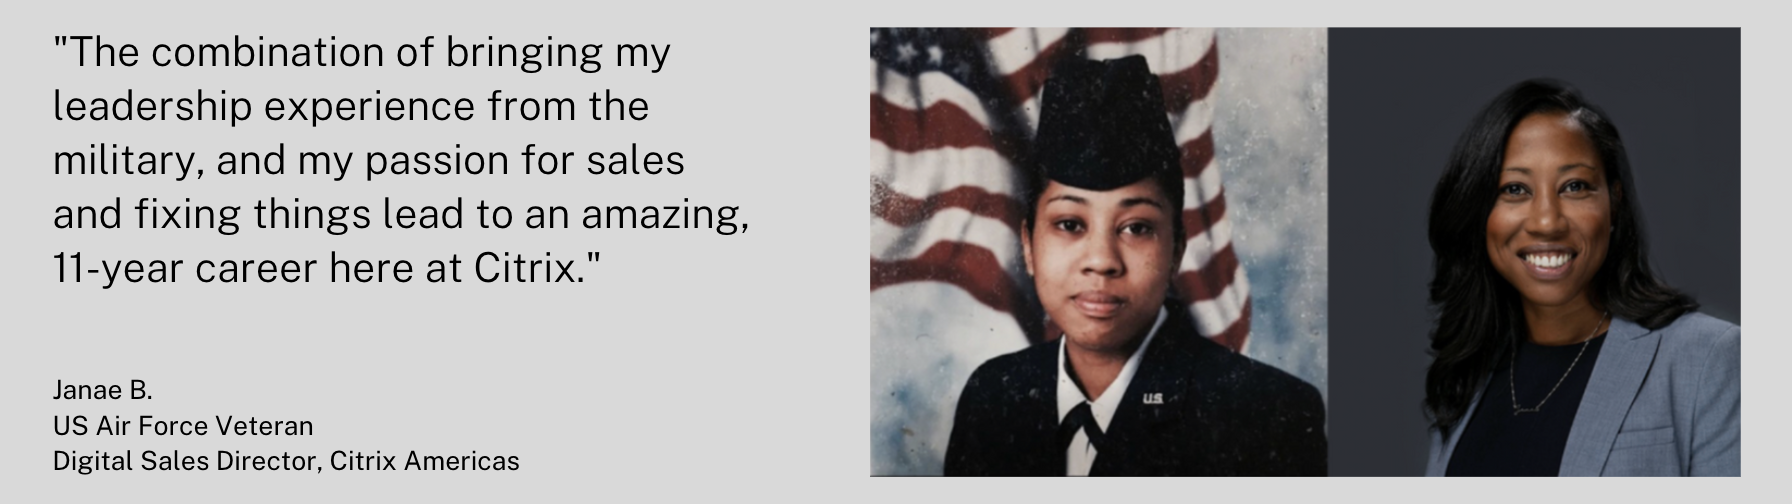 """""""The combination of bringing my leadership experience from the military, and my passion for sales and fixing things lead to an amazing, 11-year career here at Citrix. - Janae B. US Air Force Veteran & Digital Sales Director"""